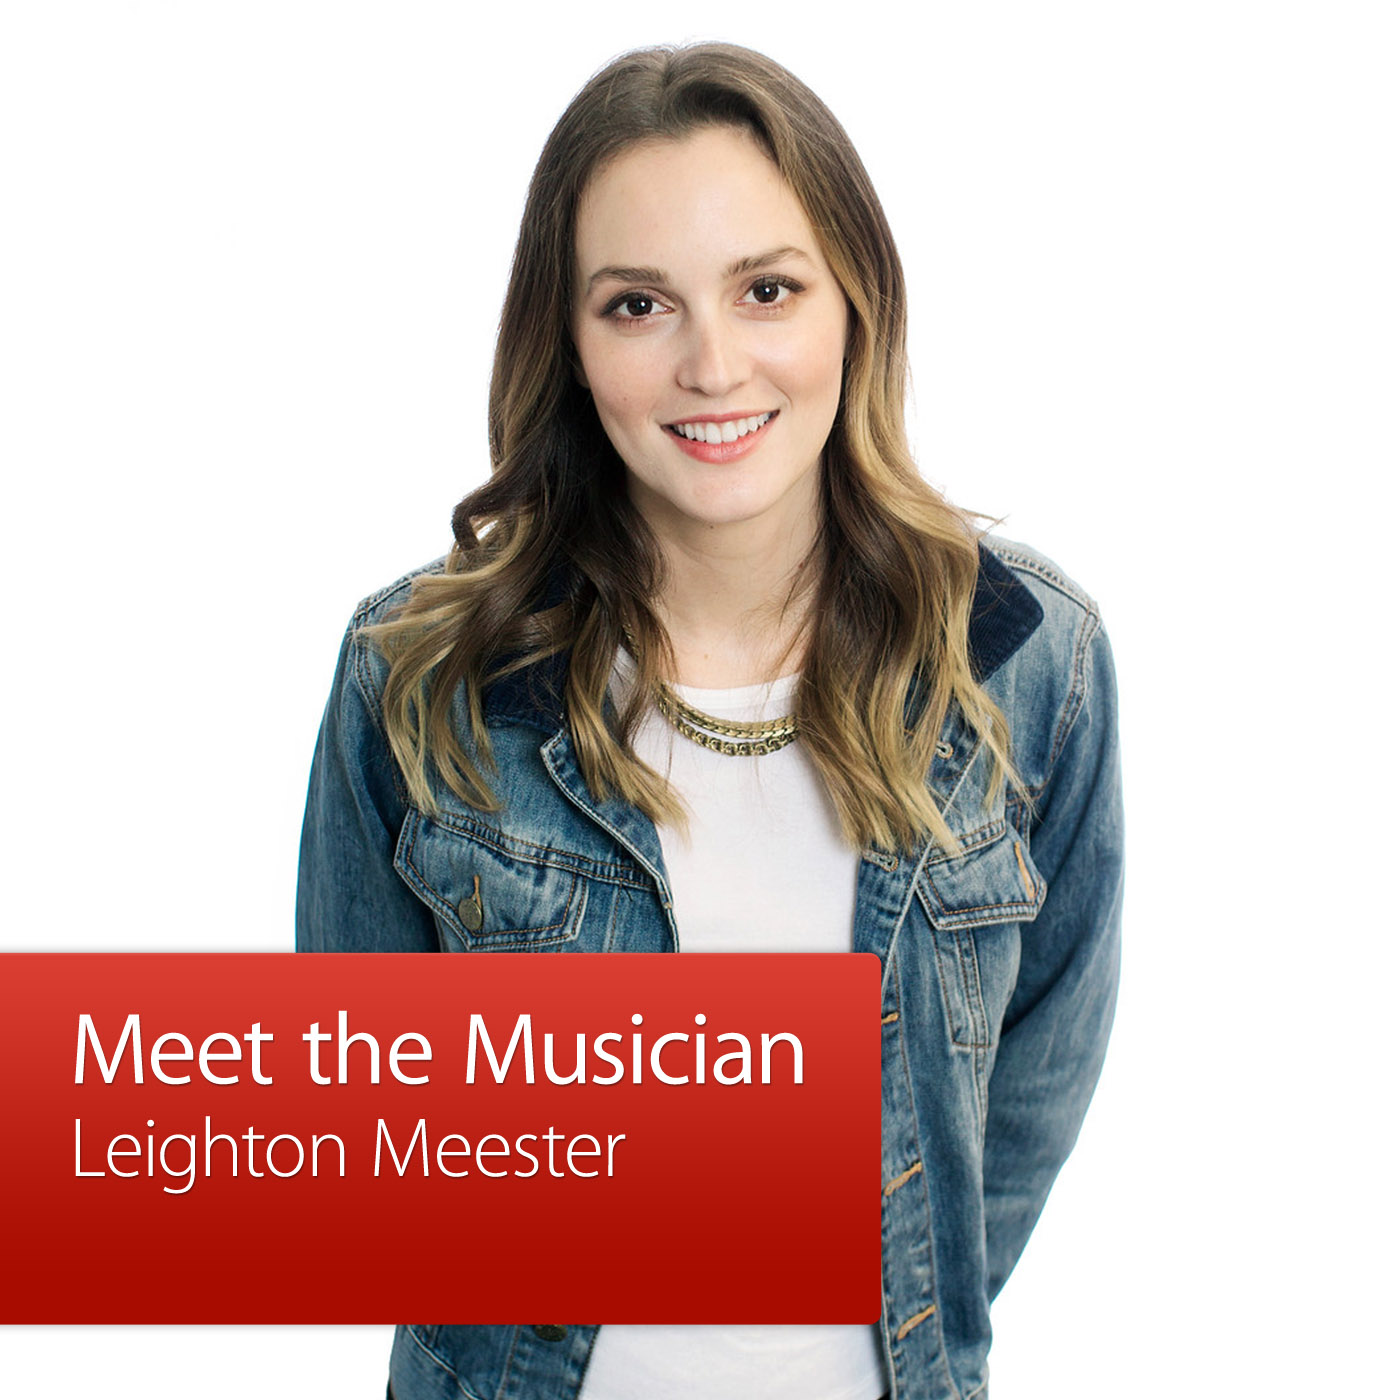 Leighton Meester: Meet the Musician